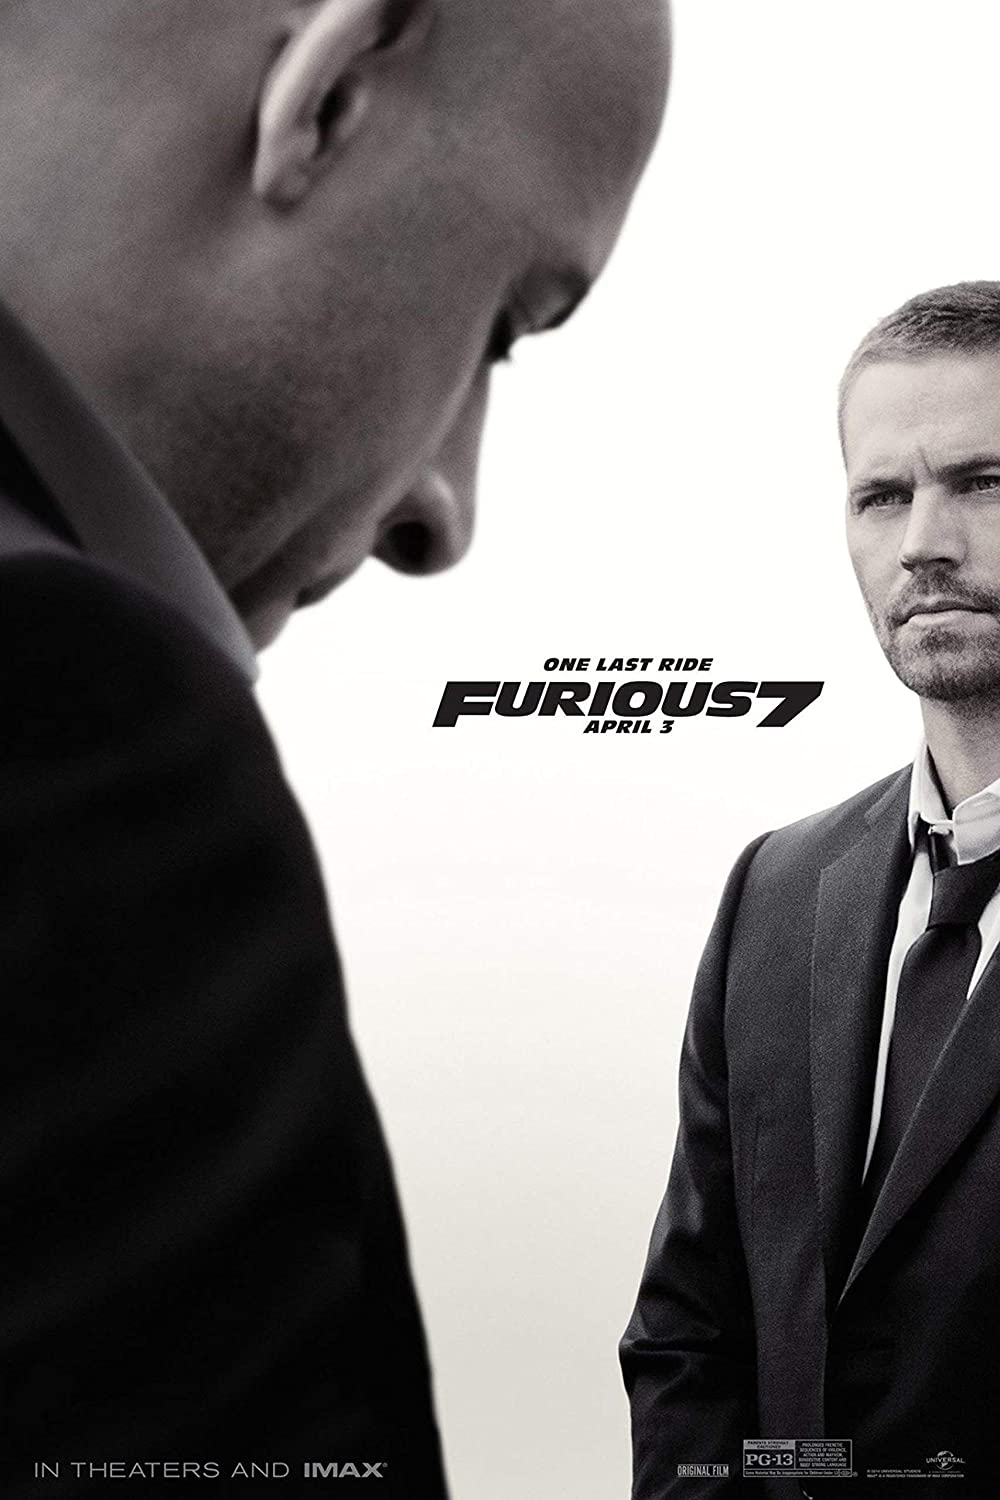 UpdateClassic Fast and Furious 7 Movie - Poster 11 x 17 inch Poster Print Frameless Art Gift 28 x 43 cm Matte Paper Surface